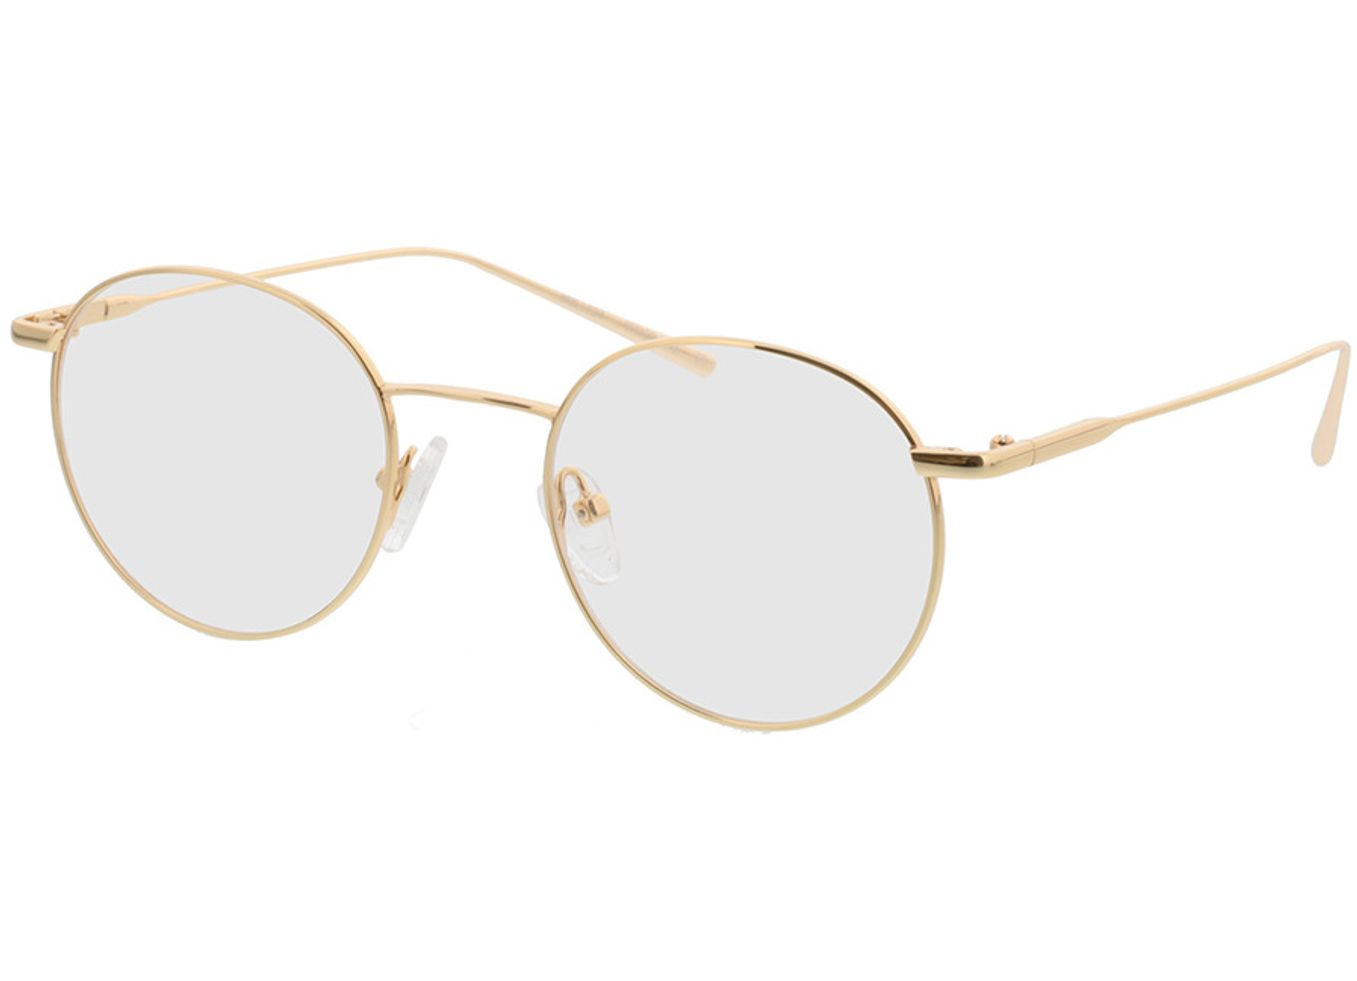 4817-singlevision-0000 Forks-gold Gleitsichtbrille, Vollrand, Rund Brille24 Collection